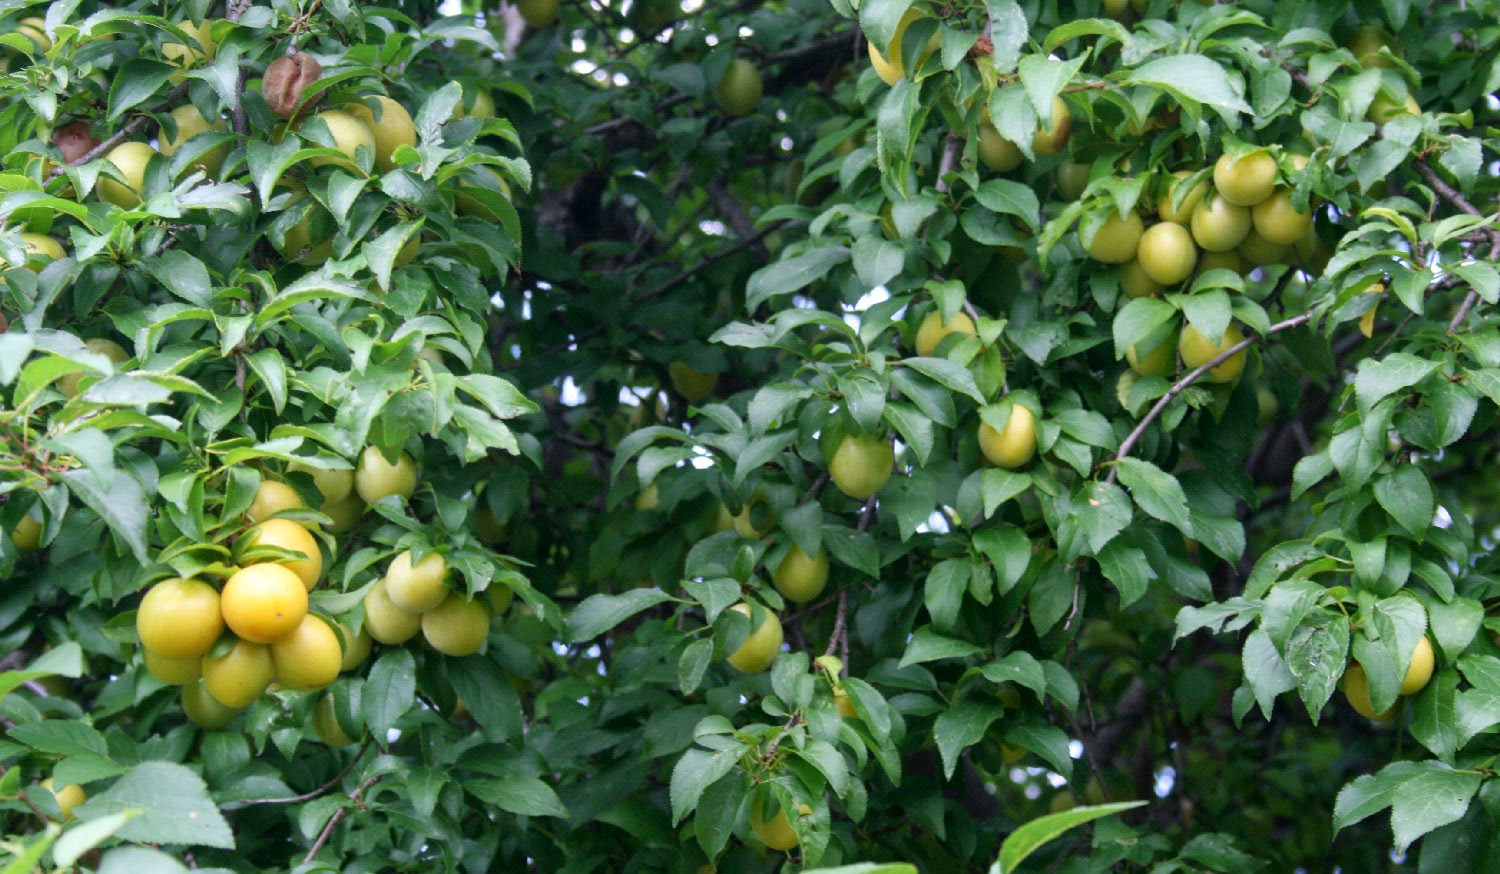 Low hanging fruit waiting to be harvested